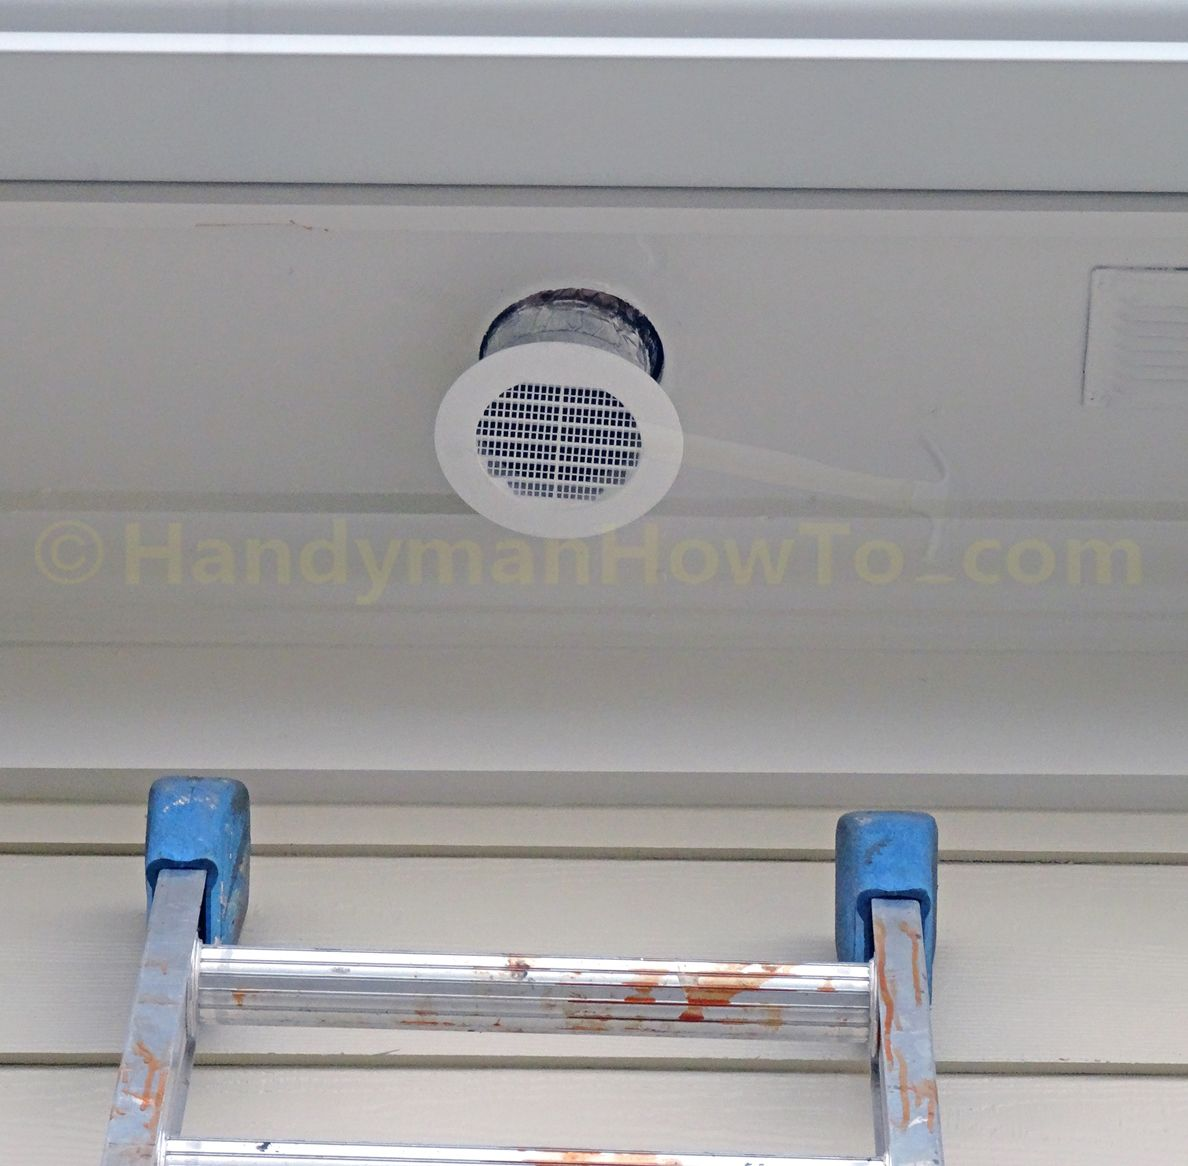 Installing exhaust fan in bathroom - How To Install A Soffit Vent And Ductwork For A Bathroom Vent Fan Mount The